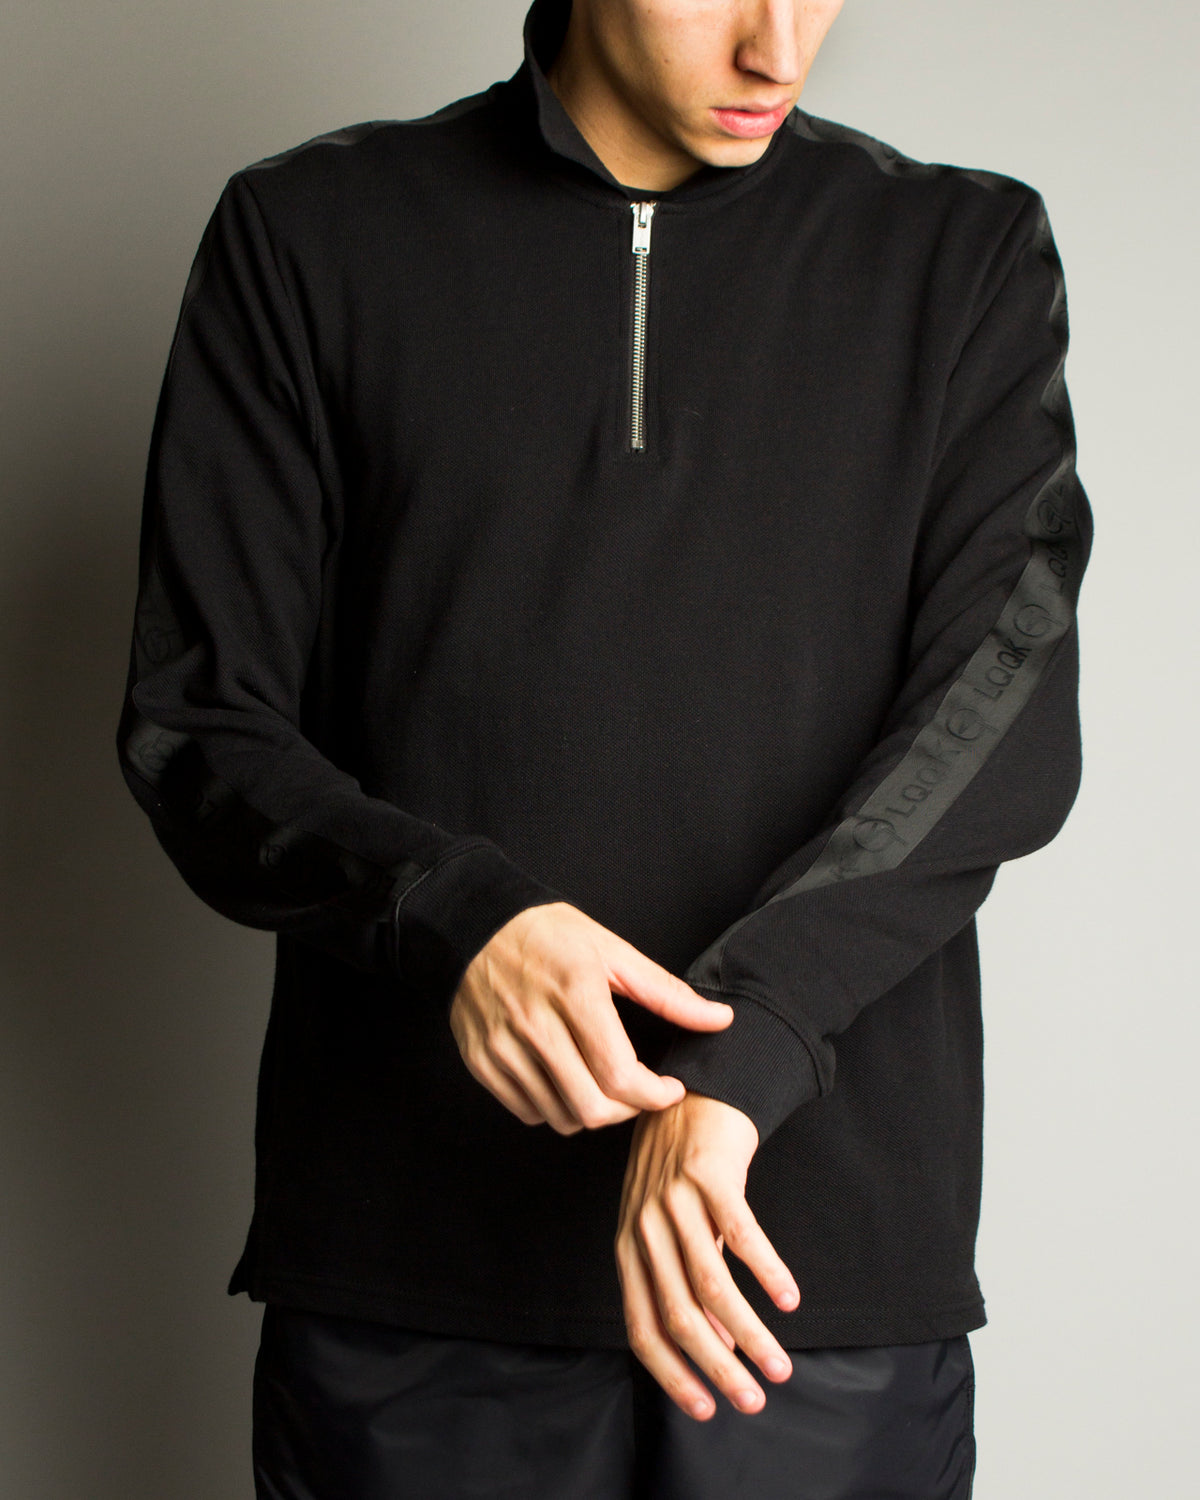 LQQK Studio LS Polo Black